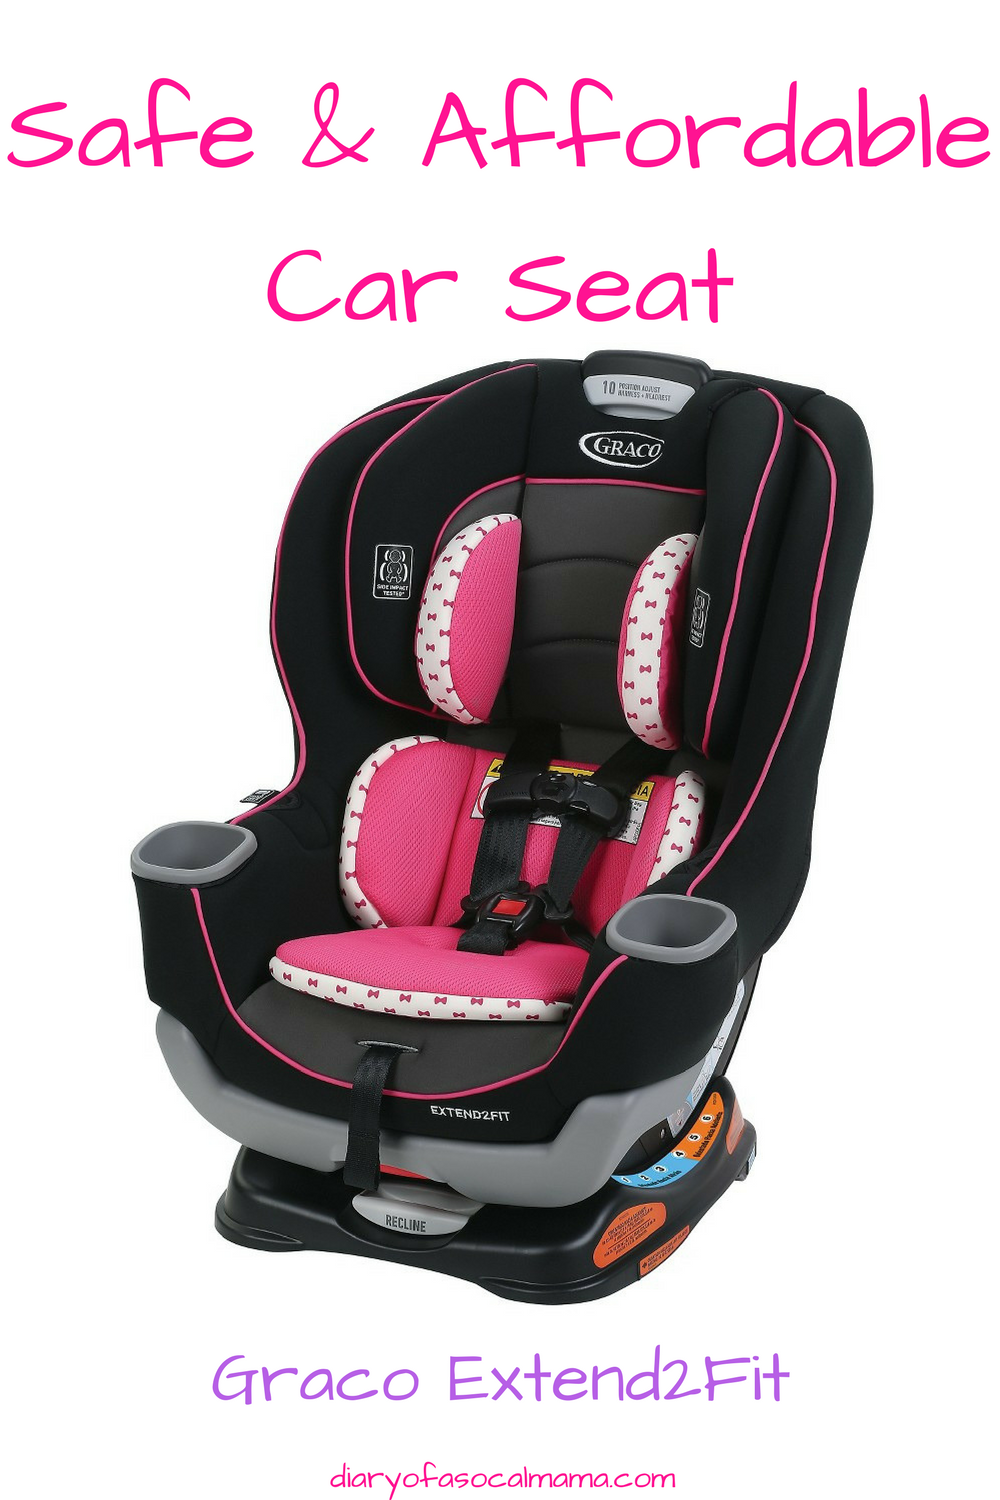 A safe & affordable car seat for your growing baby Baby